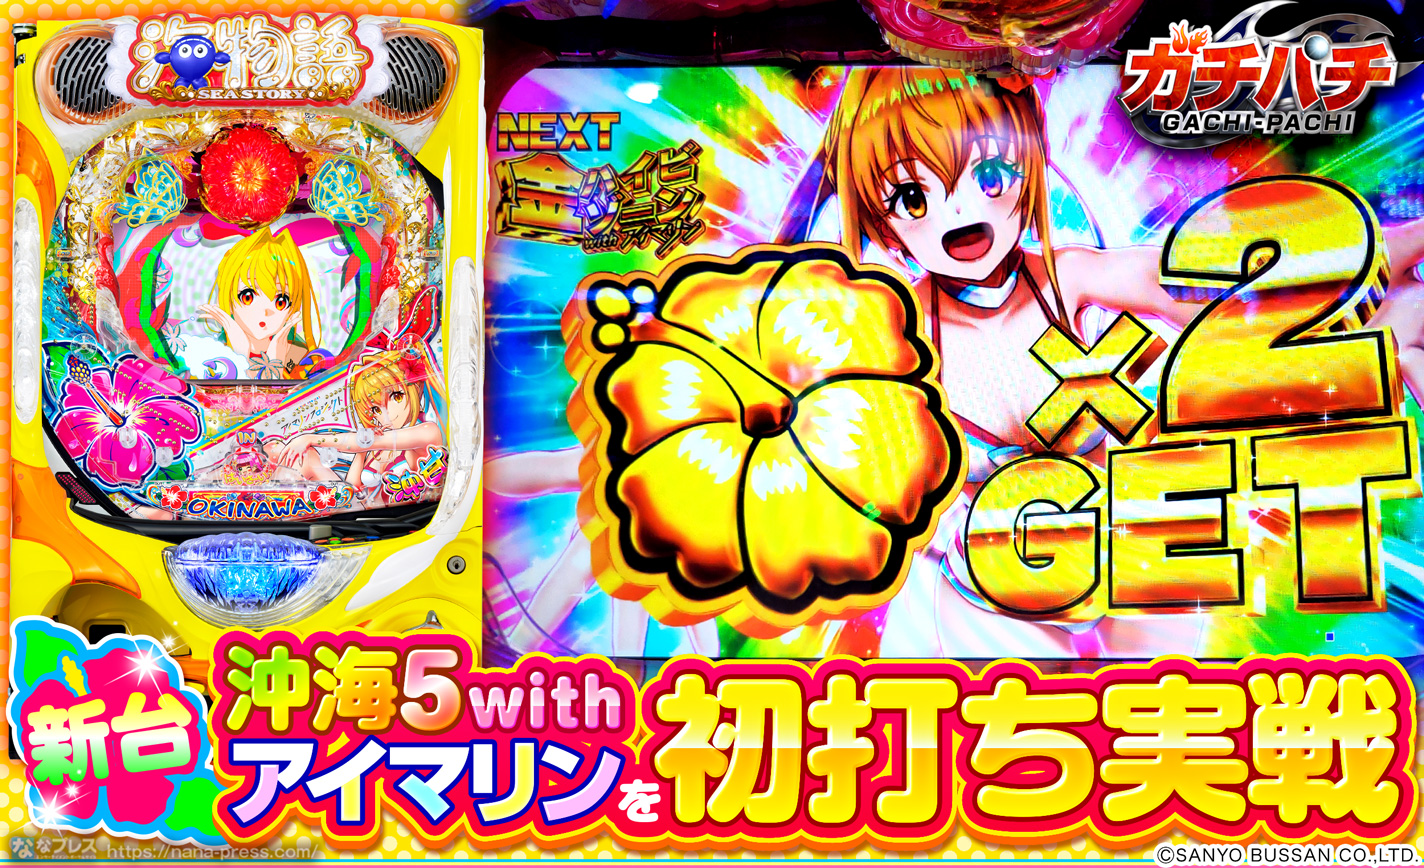 【PAスーパー海物語IN沖縄5withアイマリン】新台を初打ち実戦!遊タイム狙いを含め3機種で立ち回った結果 eyecatch-image